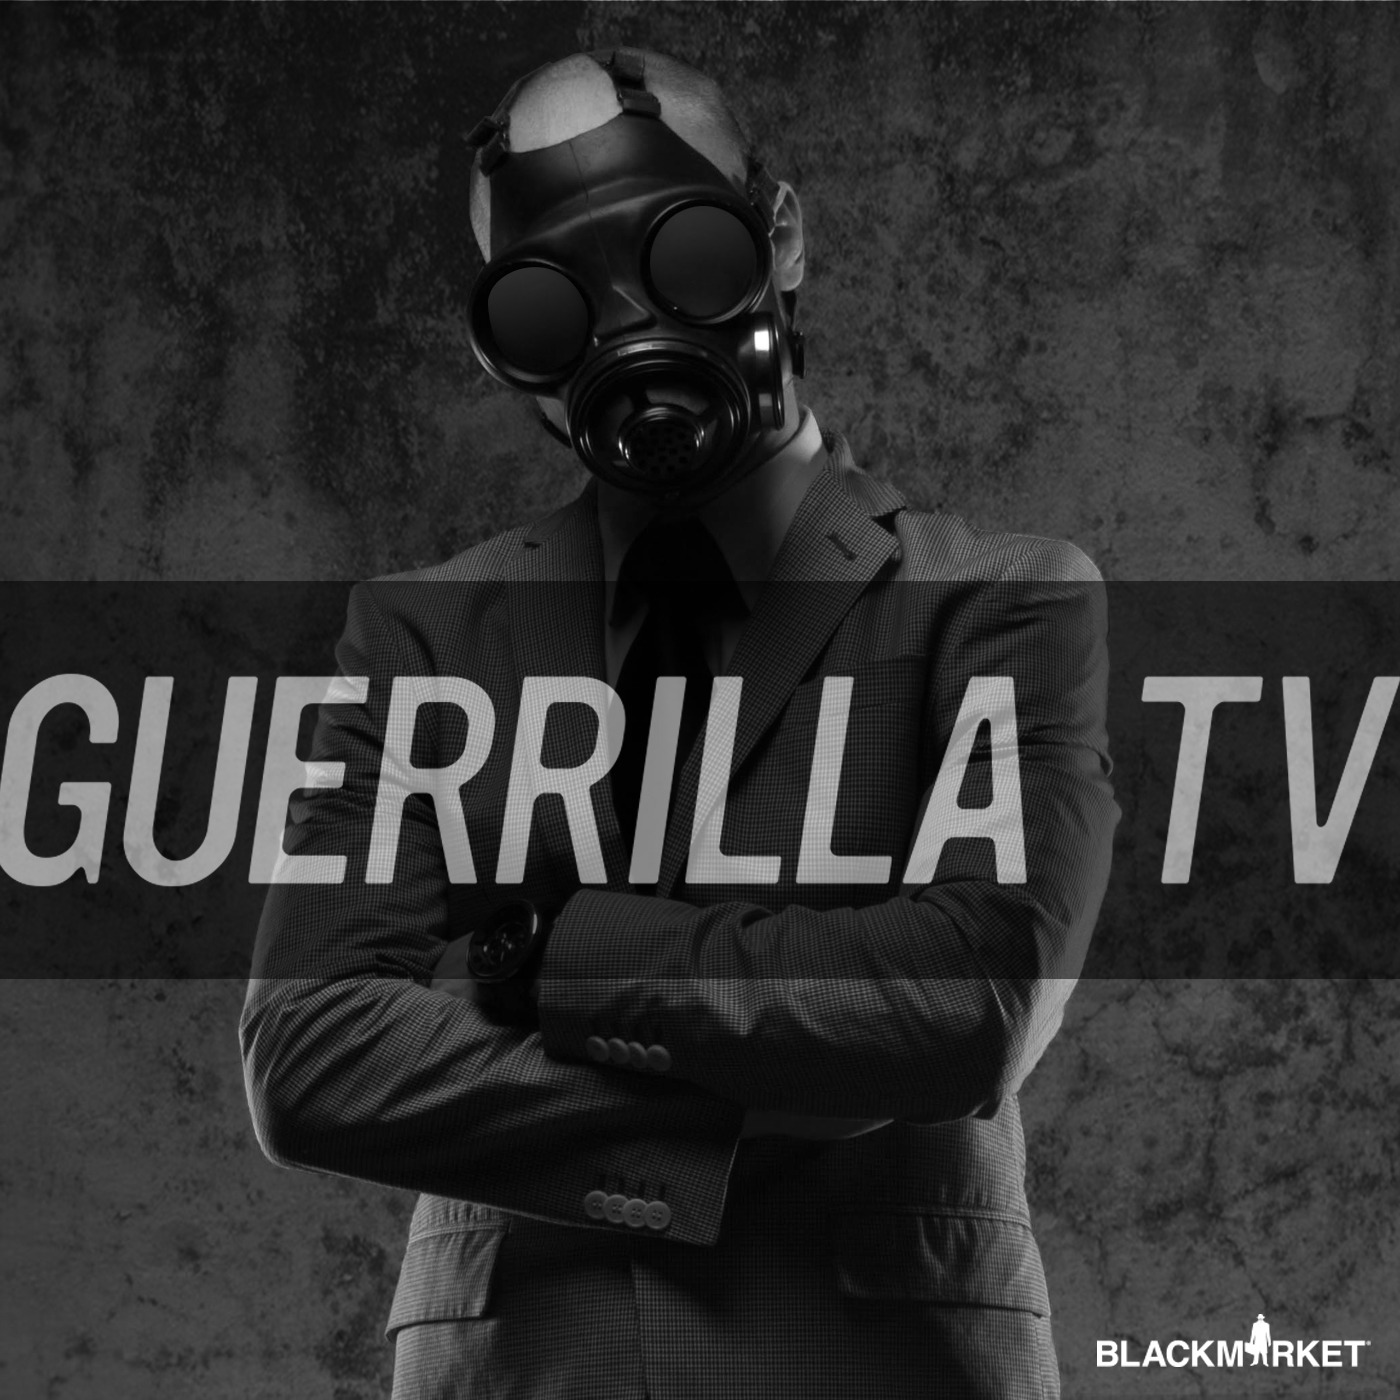 Guerrilla TV - BlackMarketLabs